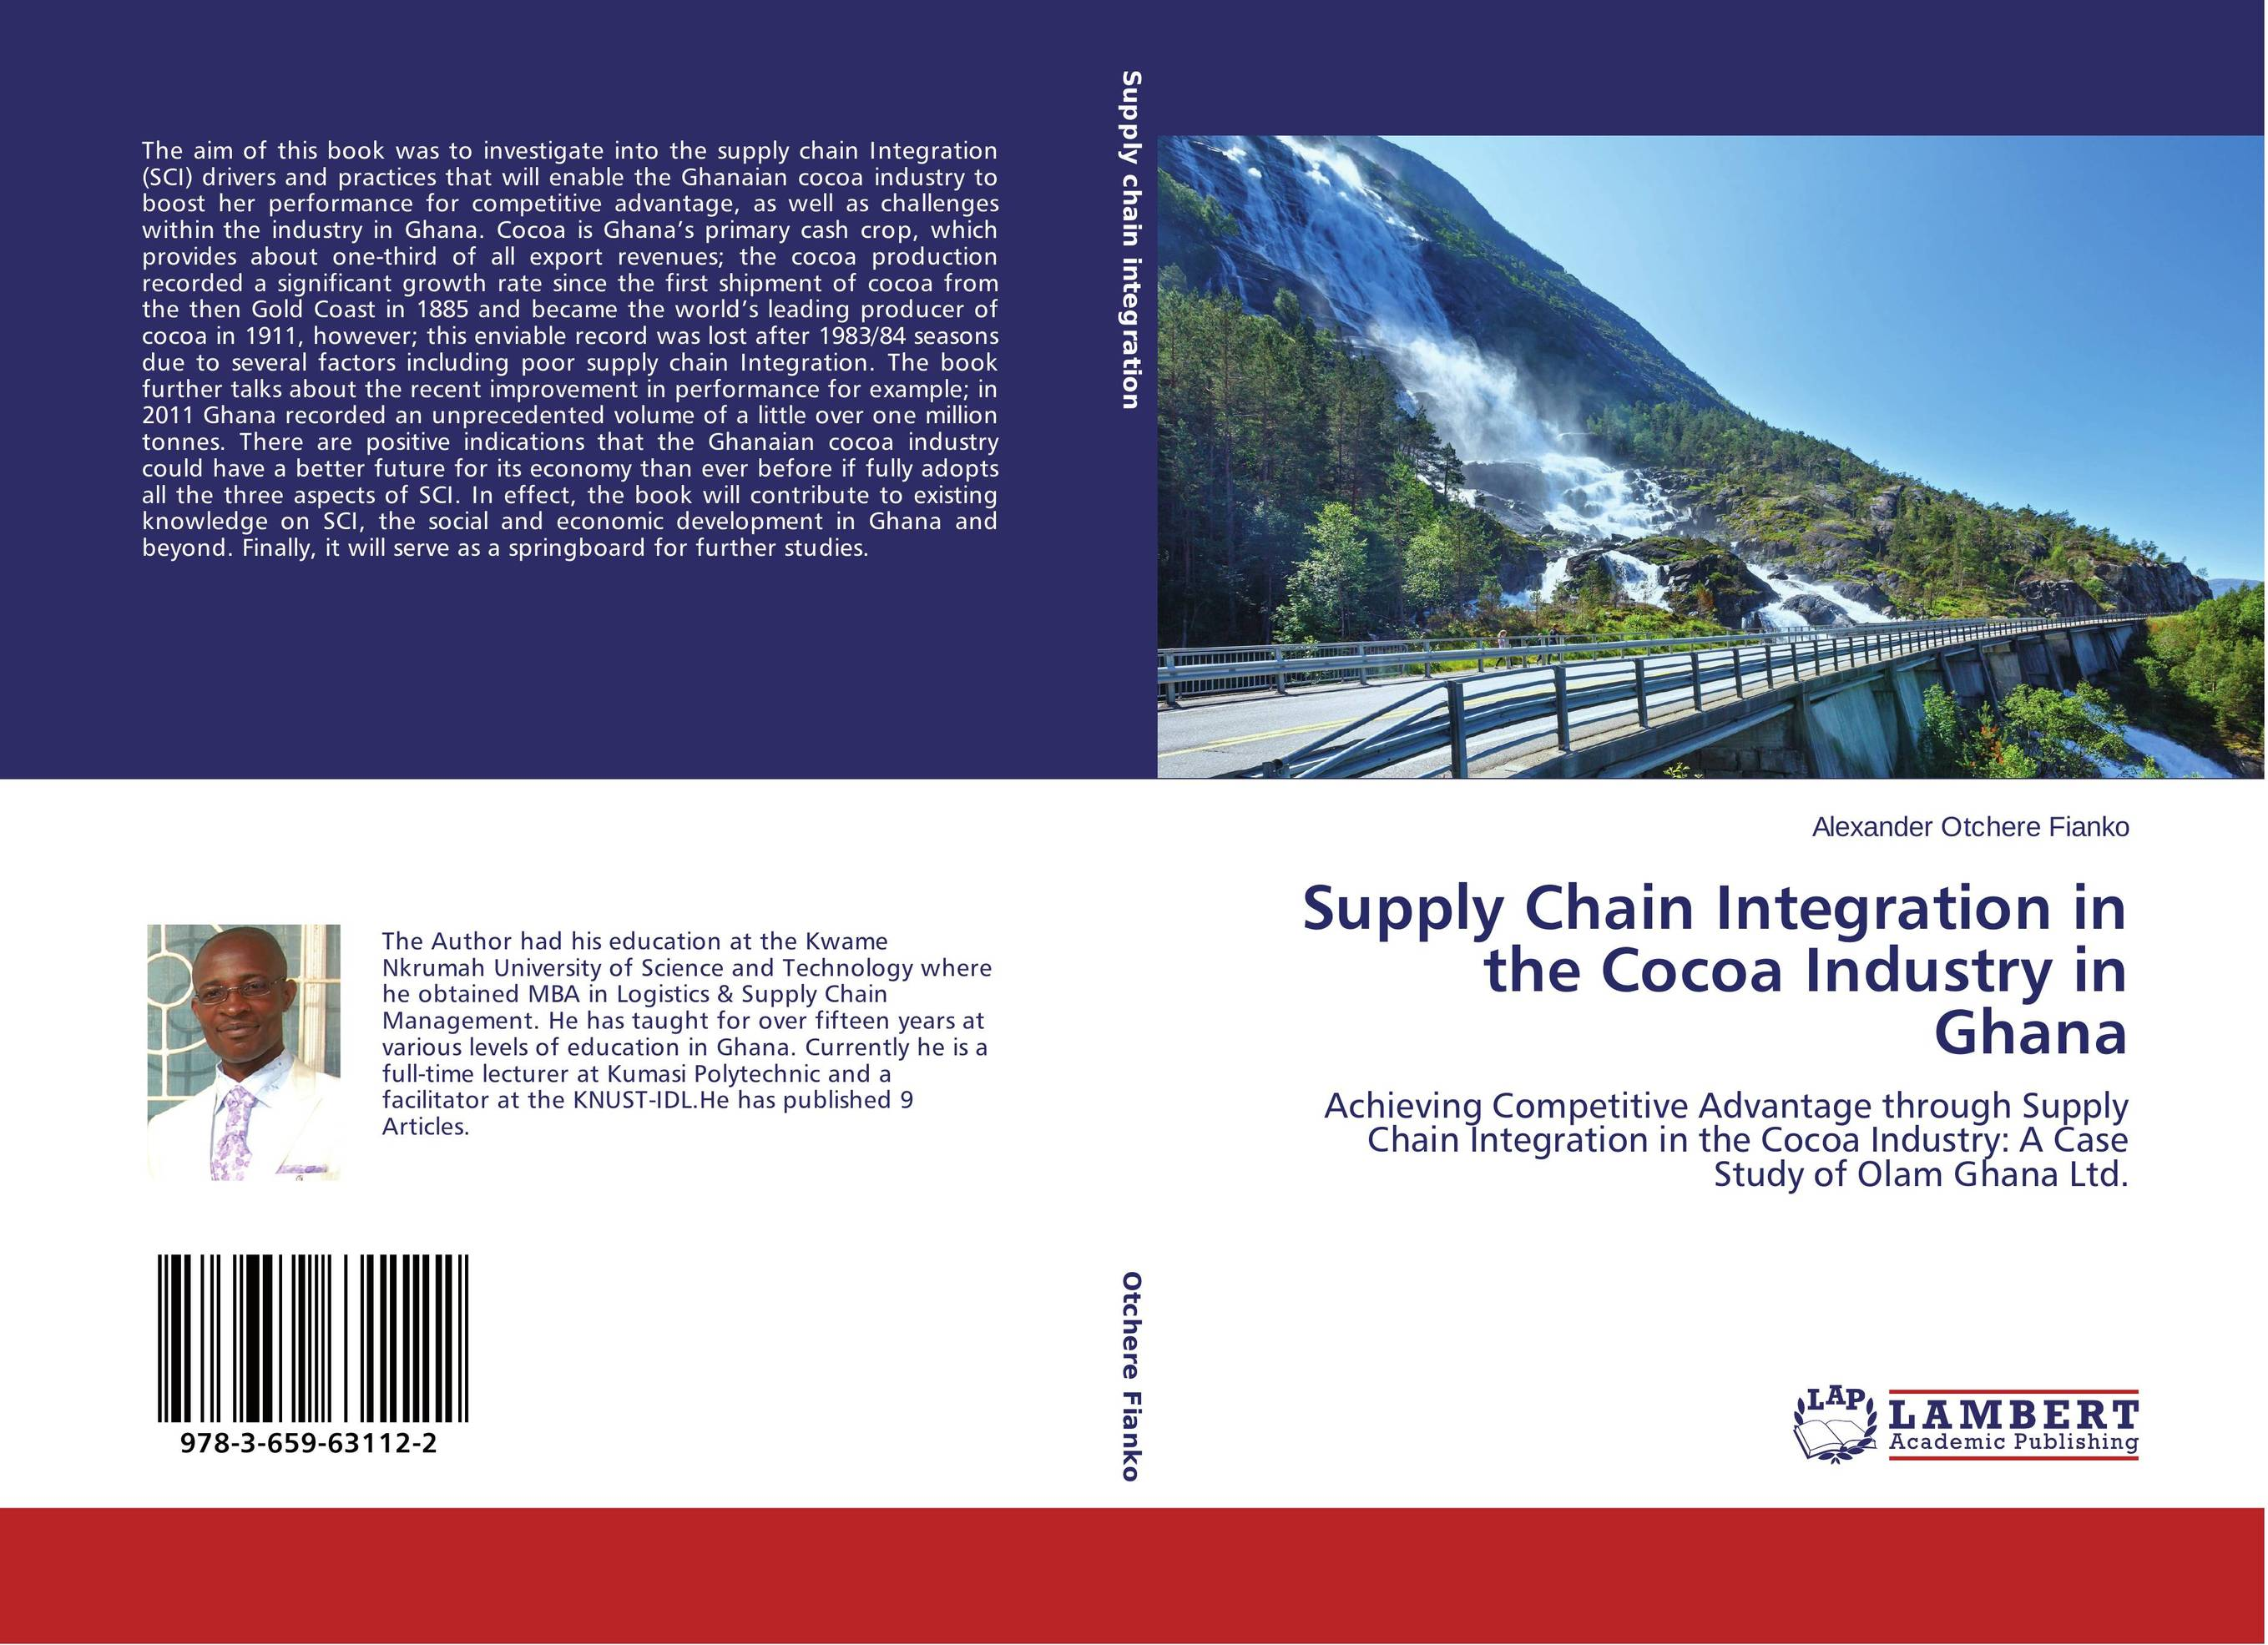 indonesia cocoa bean value chain case study Volume 3 issue 1, june 2015 [ ] performances of the cocoa farming models in cocoa bean supply chain: a case study of gapoktan resopammase in south sulawesi, indonesia.